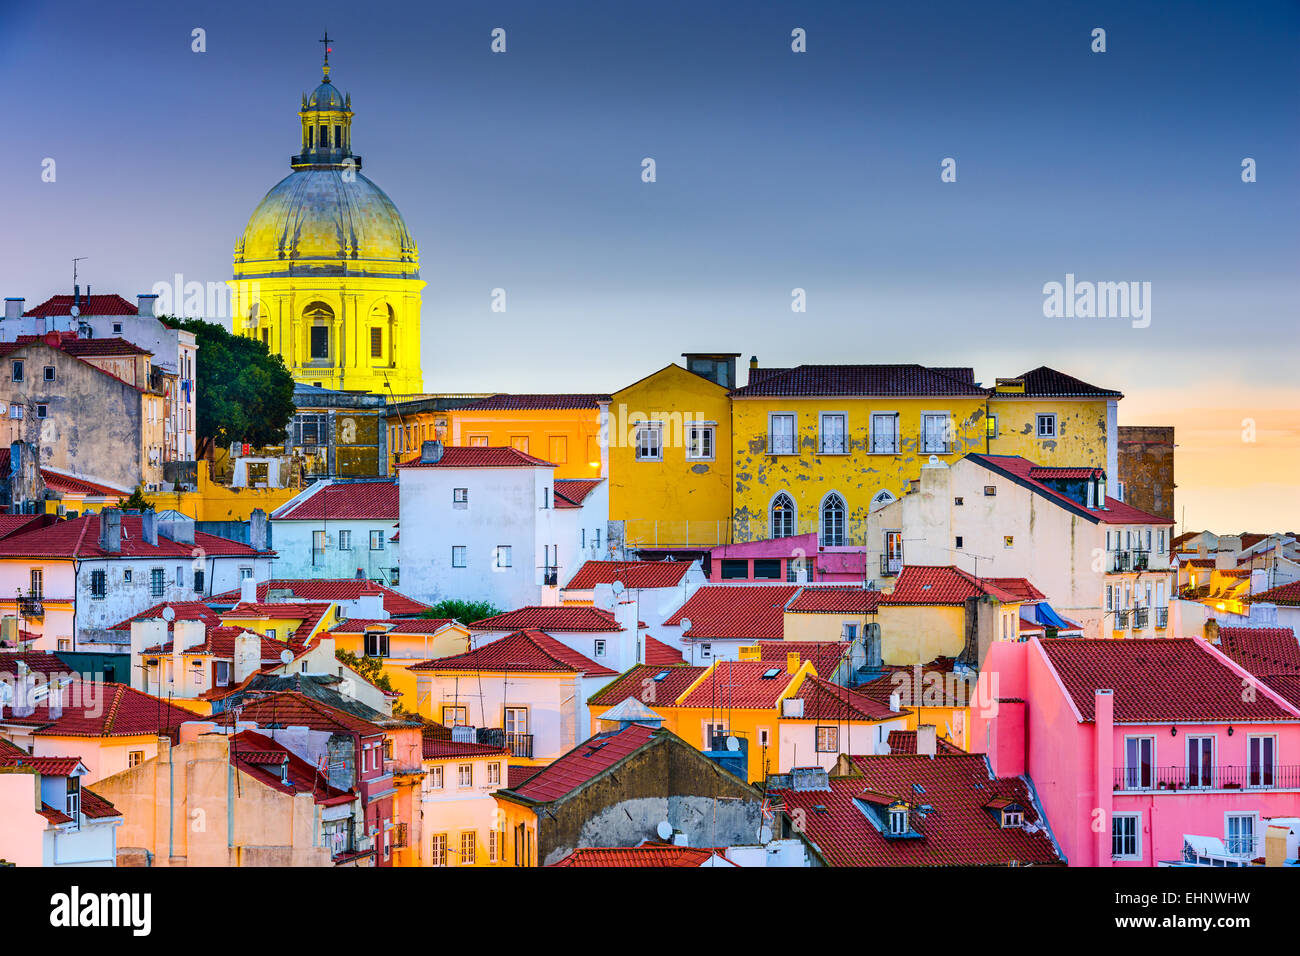 Lisbon, Portugal skyline at Alfama, the oldest district of the city with the National Pantheon Dome. - Stock Image